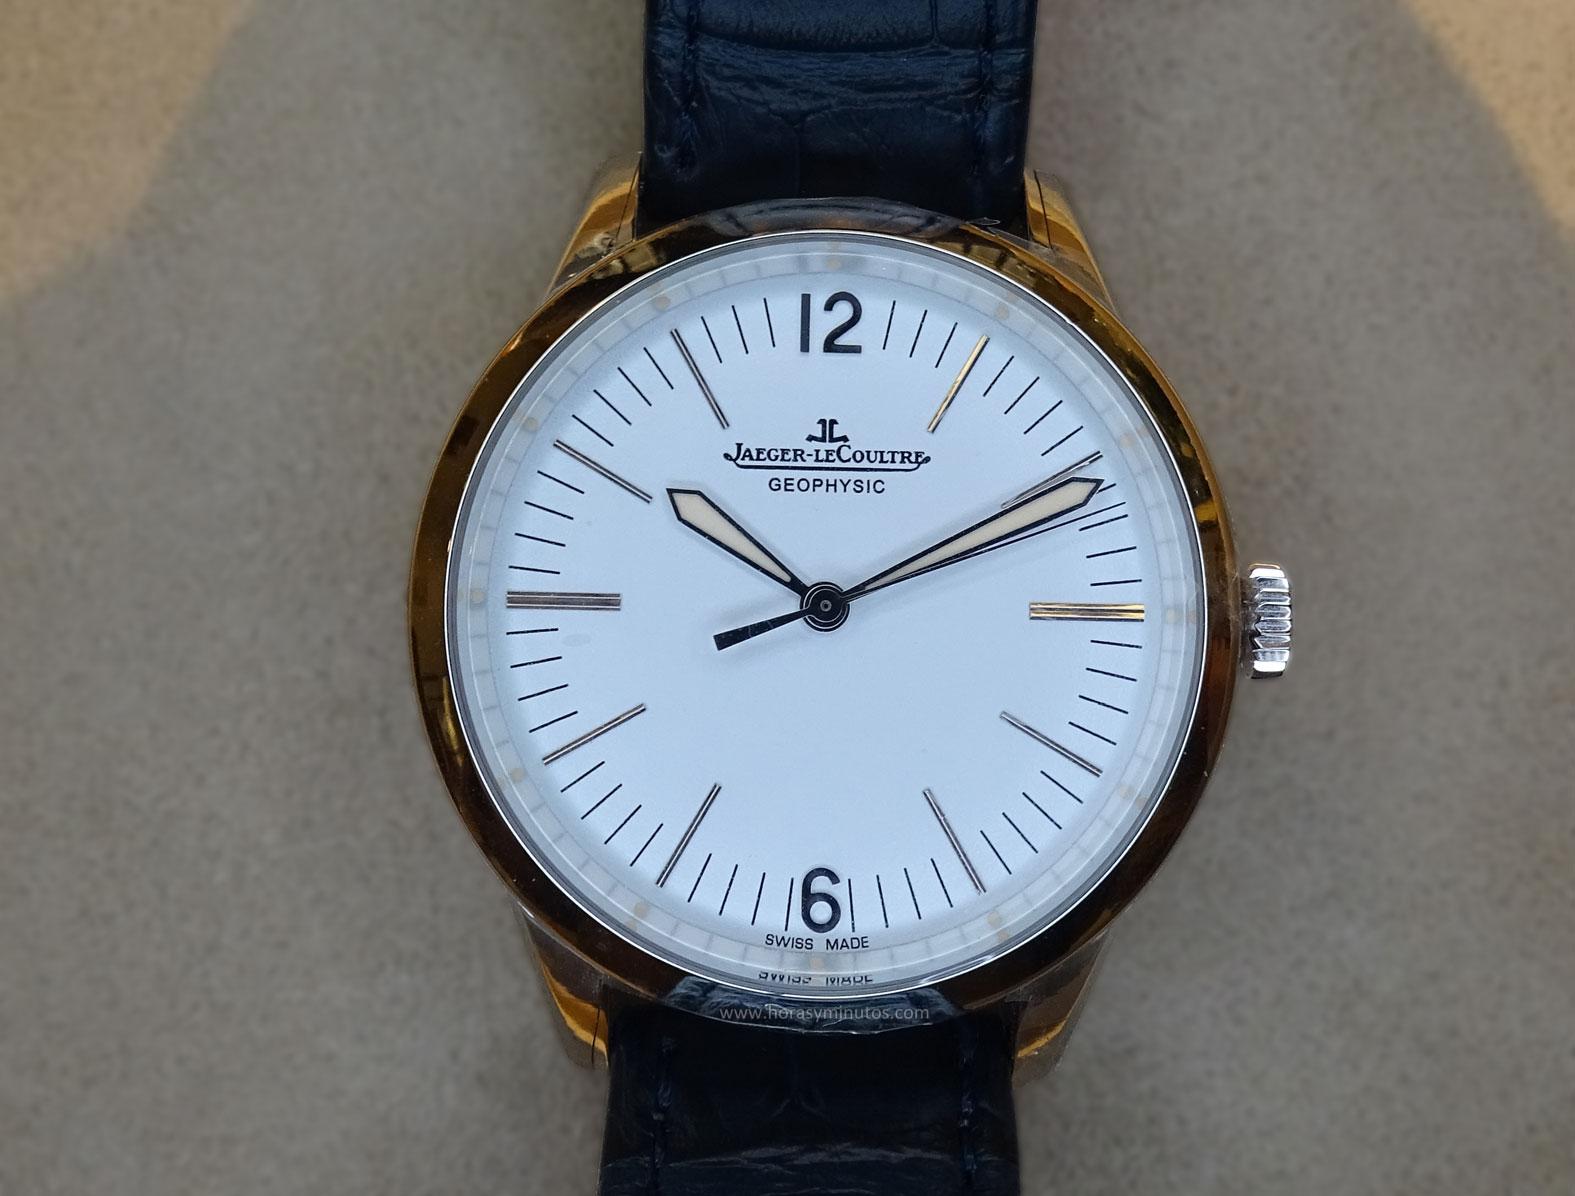 Jaeger-LeCoultre Geophysic platino